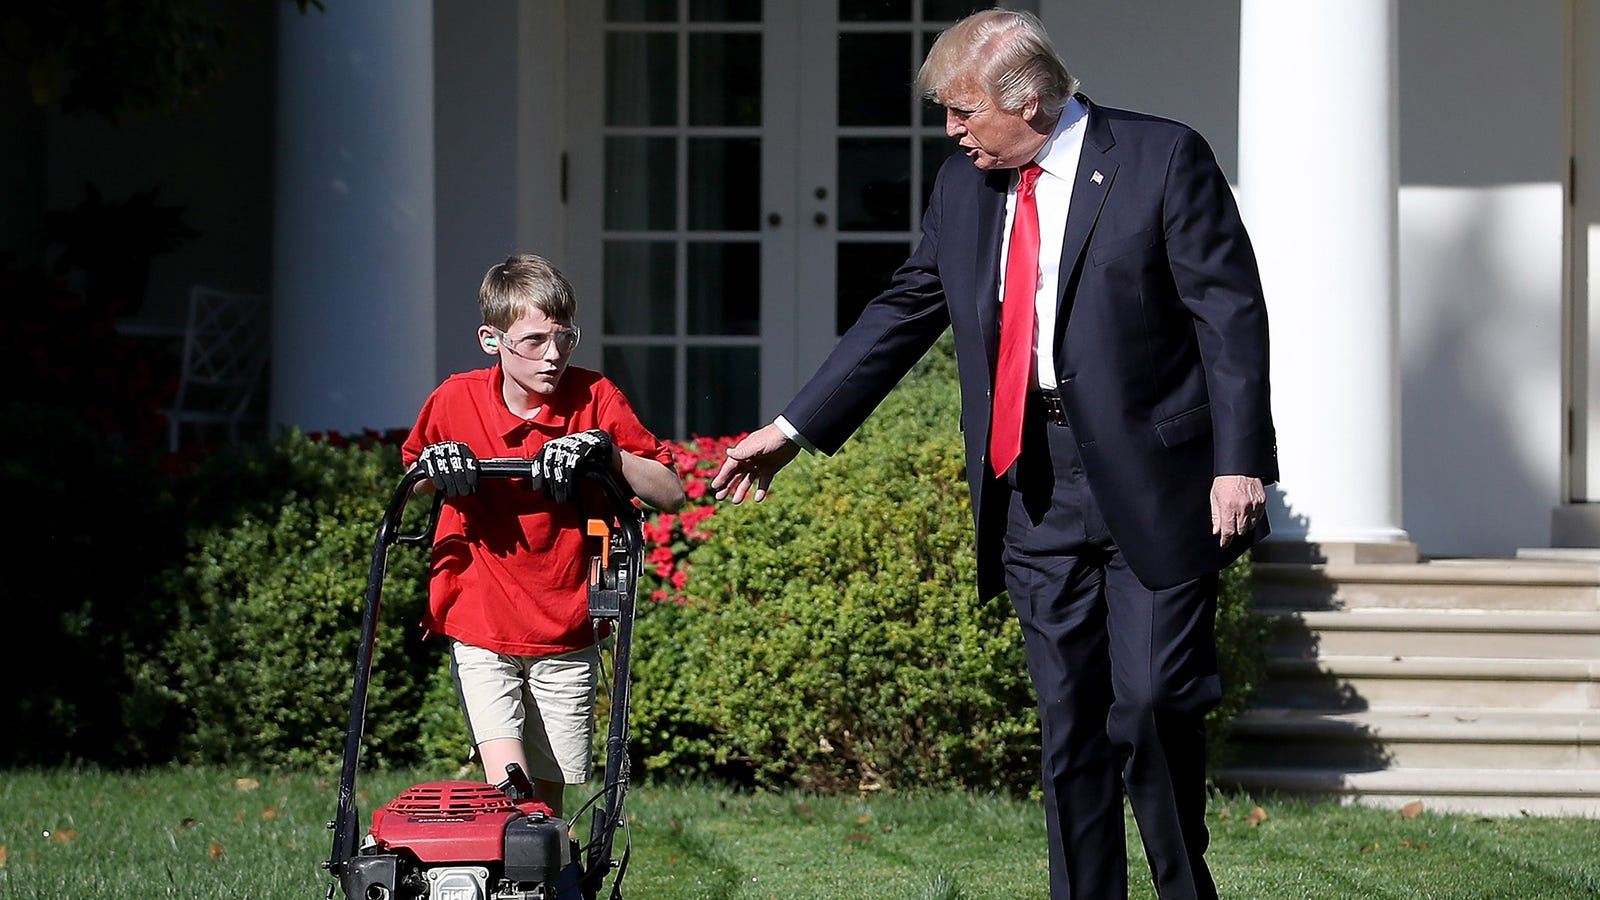 Kid Who Mowed White House Lawn To Flip On Trump